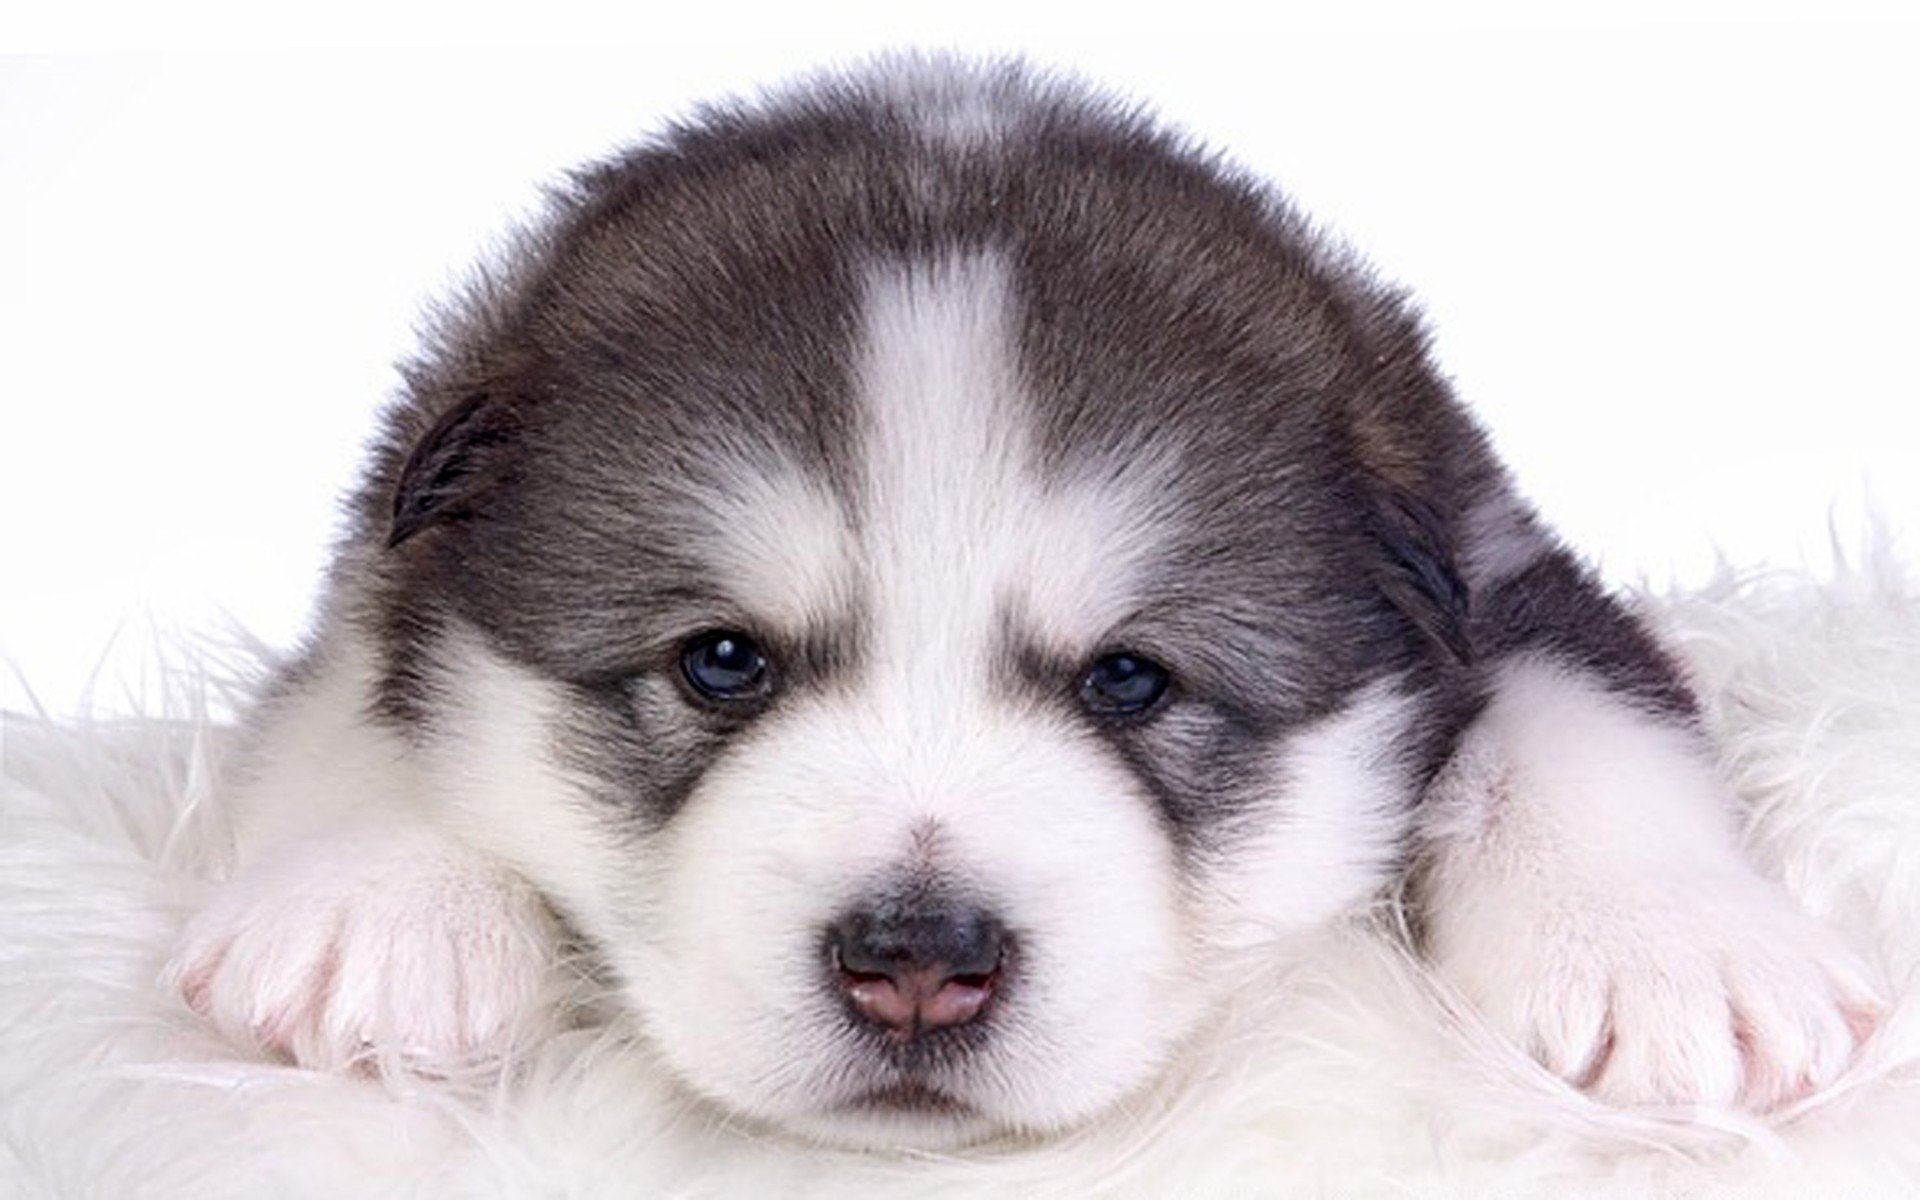 Alaskan Malamute Young Puppy HD Wallpaper | Background ... | 1920 x 1200 jpeg 224kB